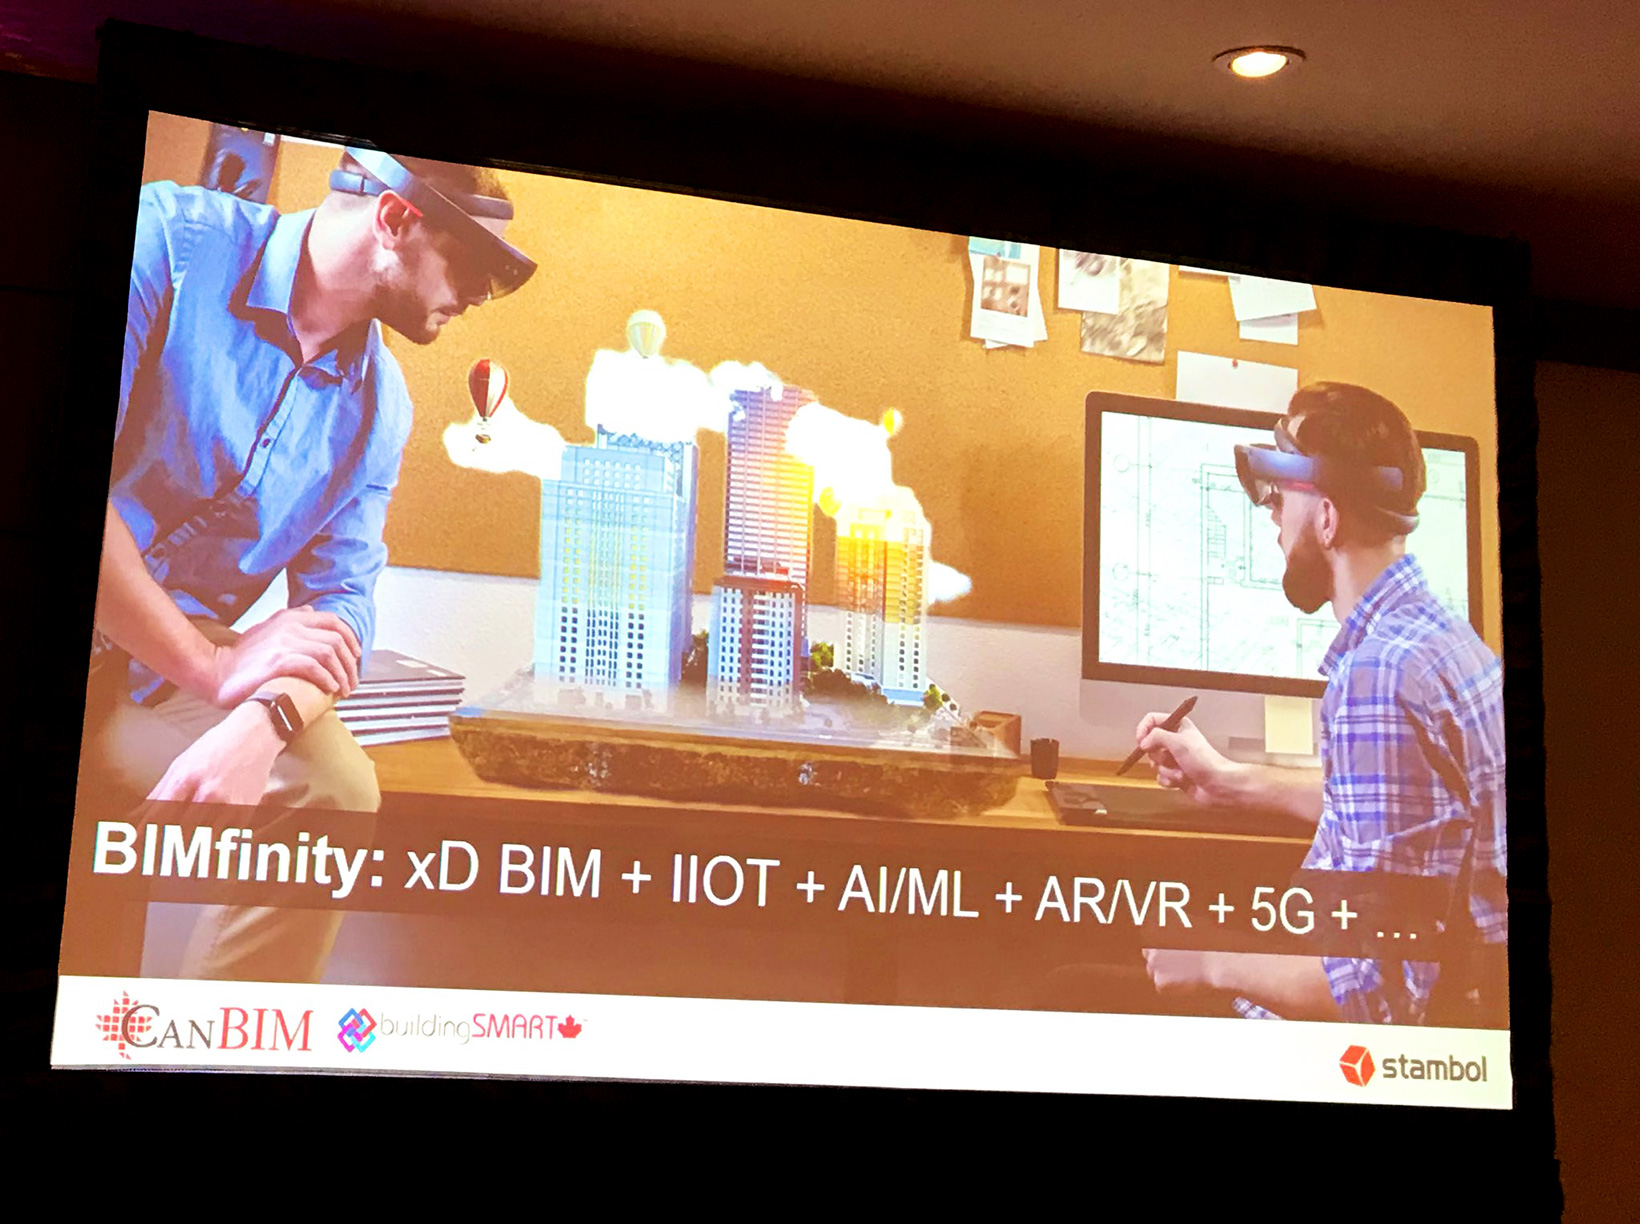 Powerpoint slide on BIMfinity, IOT, AI, AR, VR, 5G